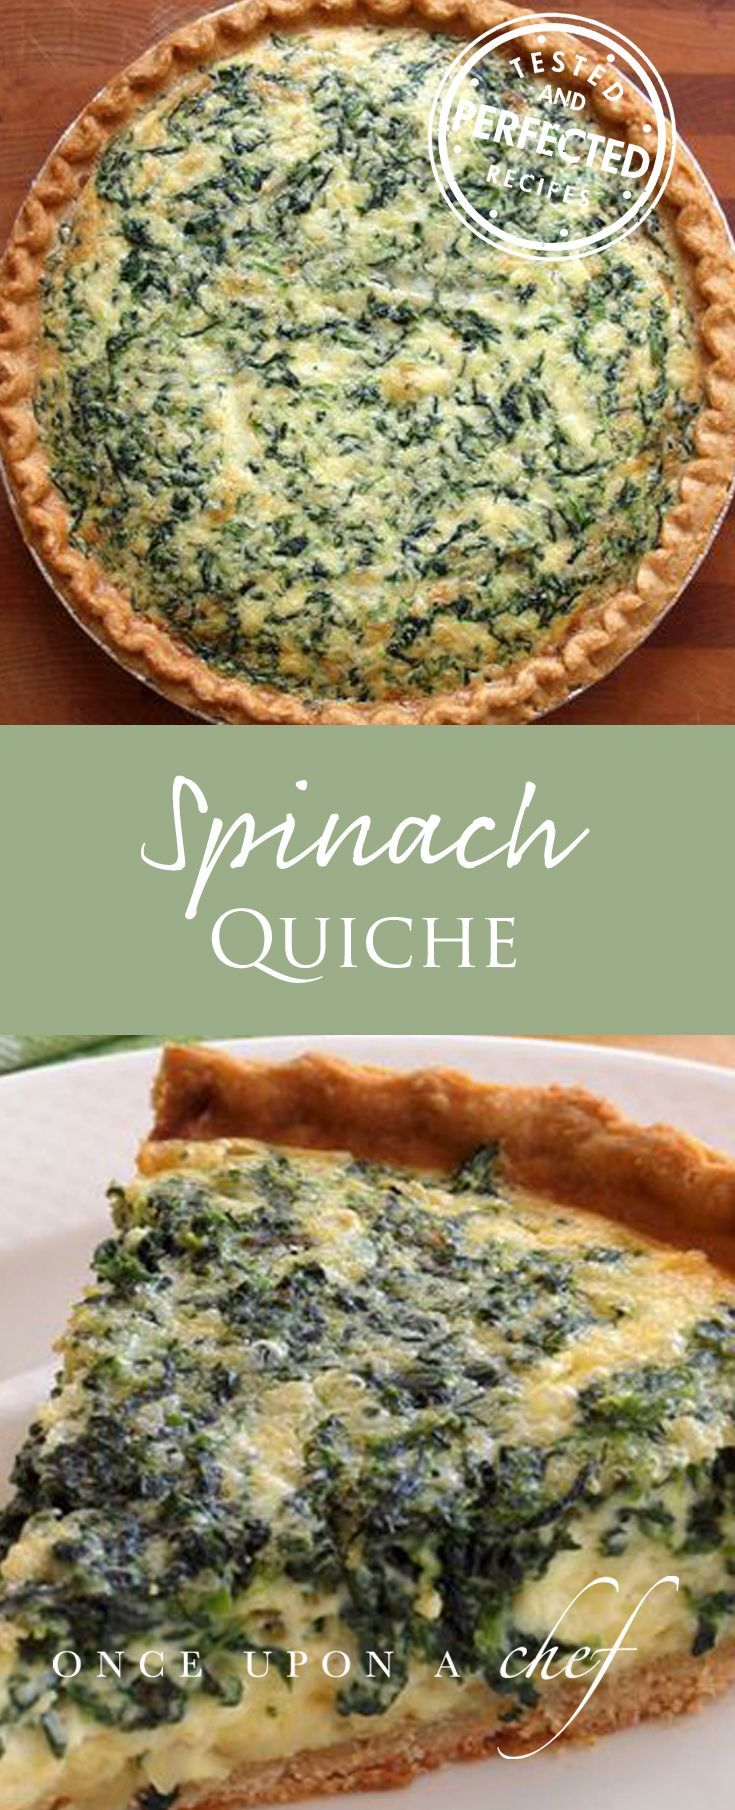 Spinach & Gruyère Quiche I made it 4-19-17 with swiss instead of gruyere. I also used light cream and went heavy on the spinach and it was delicious.